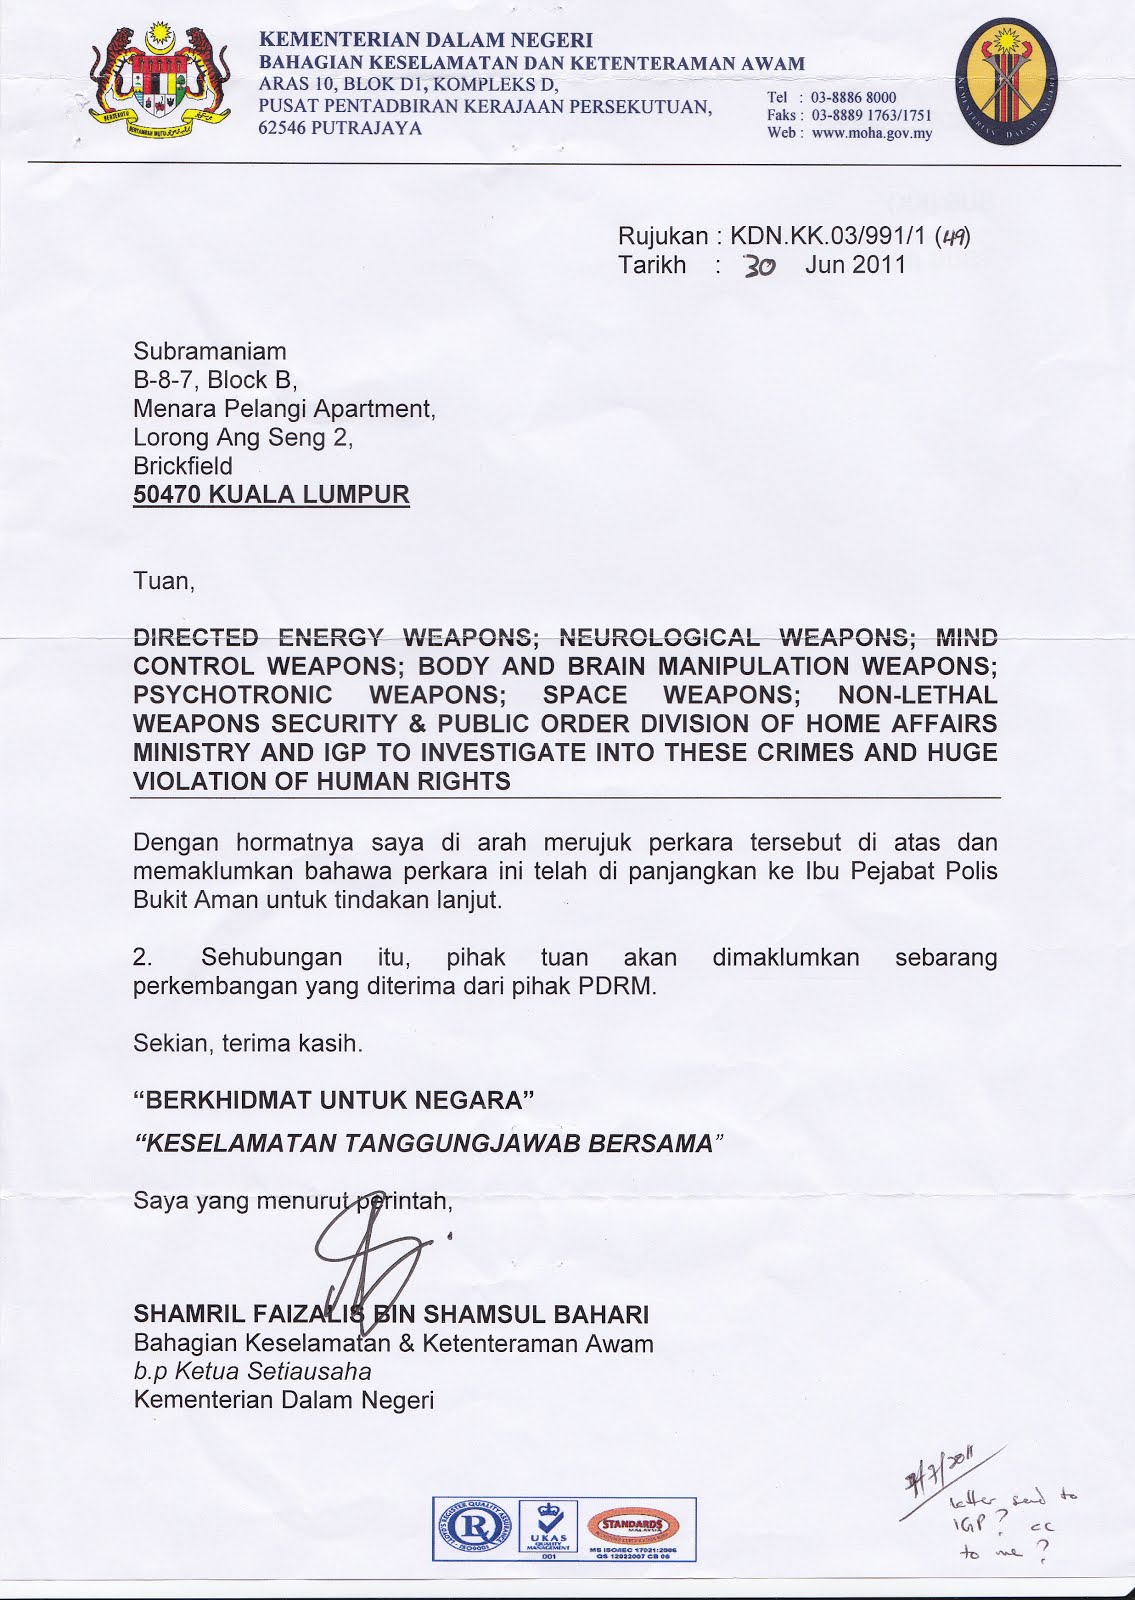 Letter from Malaysian PM's Office( KDN Security and Public Order Division)